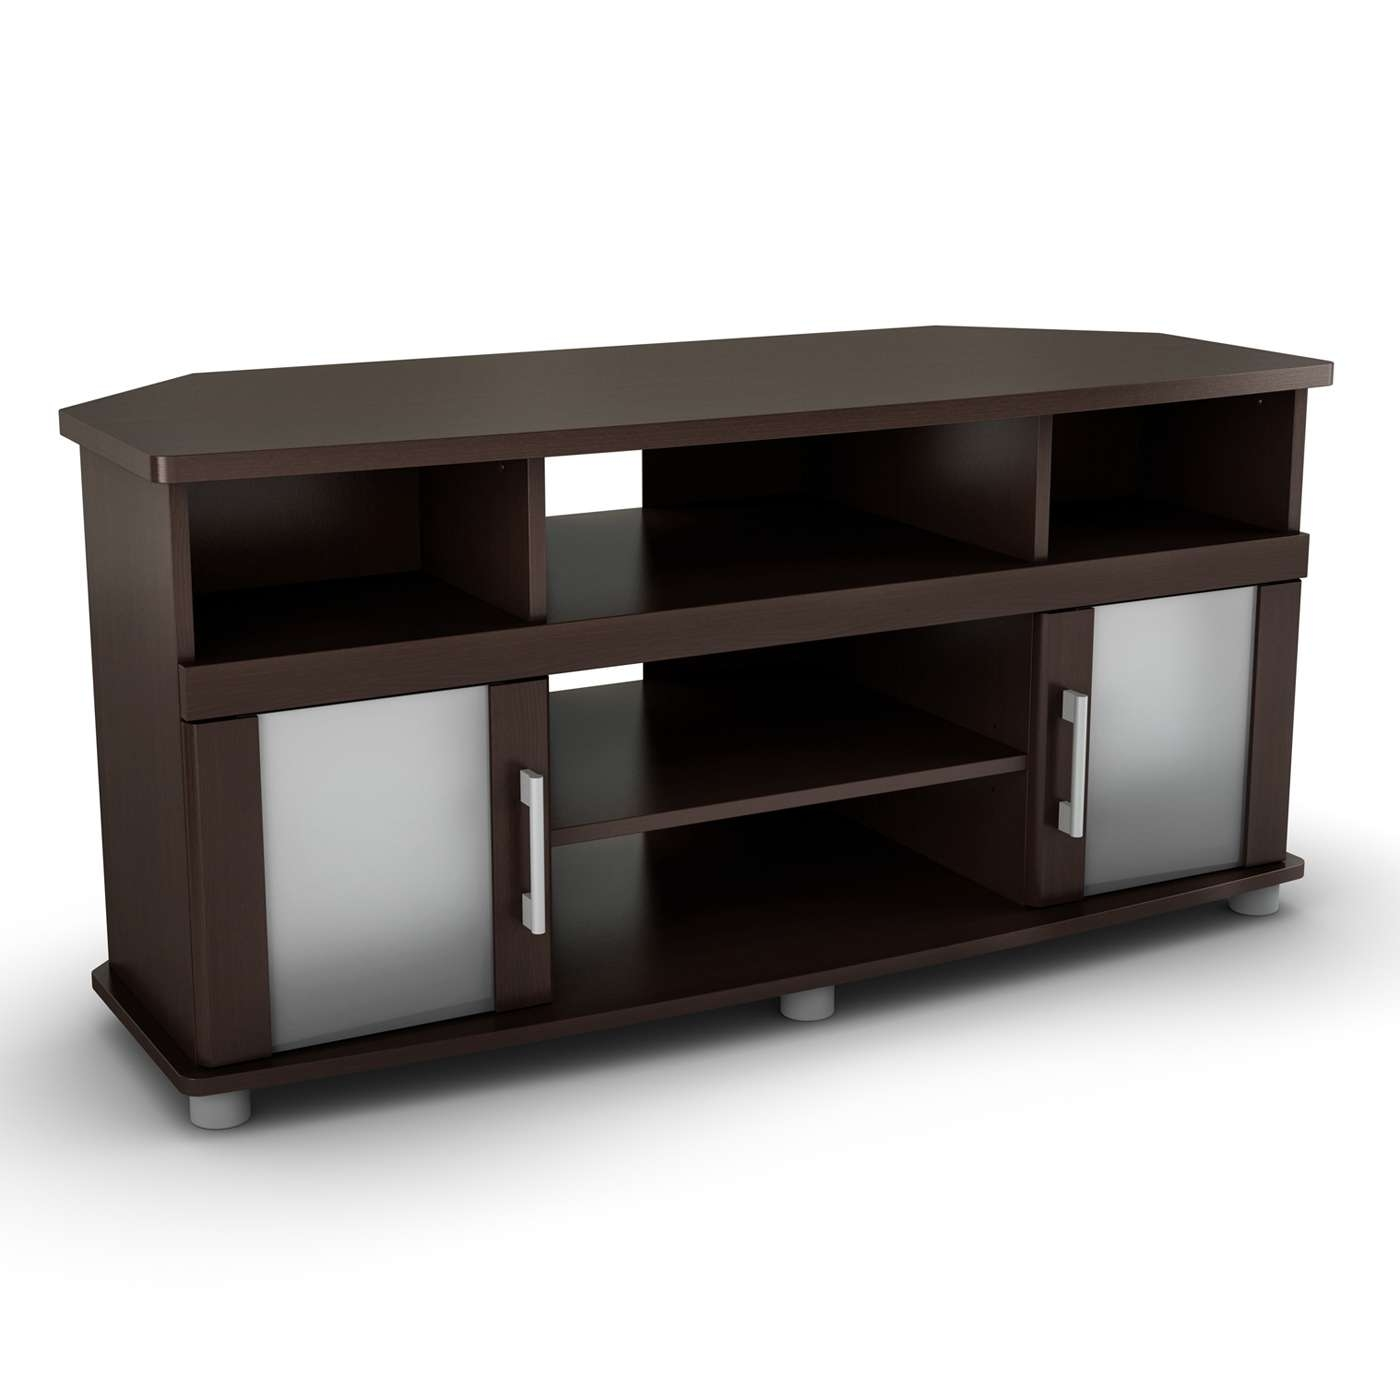 Corner Tv Stands | Lowe's Canada Pertaining To 24 Inch Corner Tv Stands (View 14 of 15)